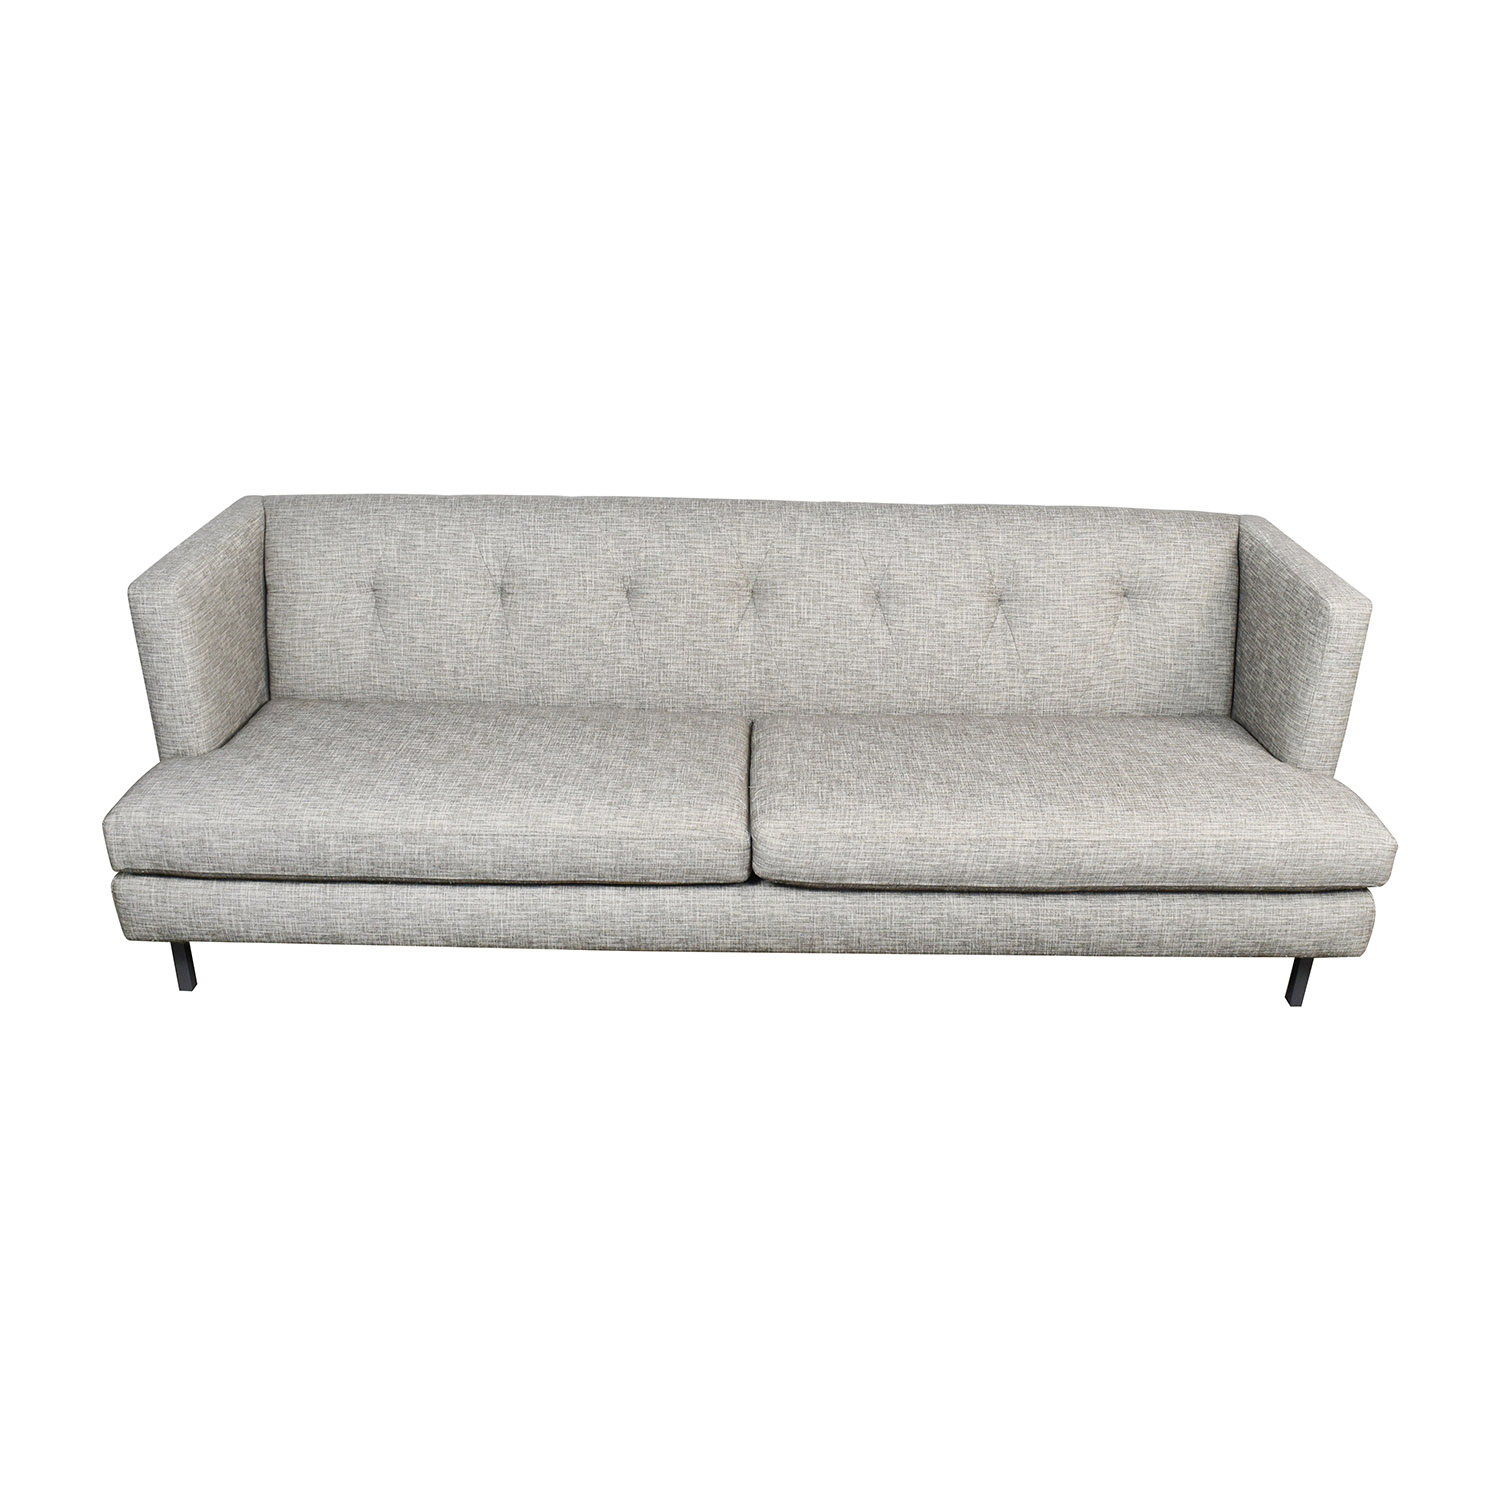 CB2 CB2 Avec Gray Tufted Sofa on sale